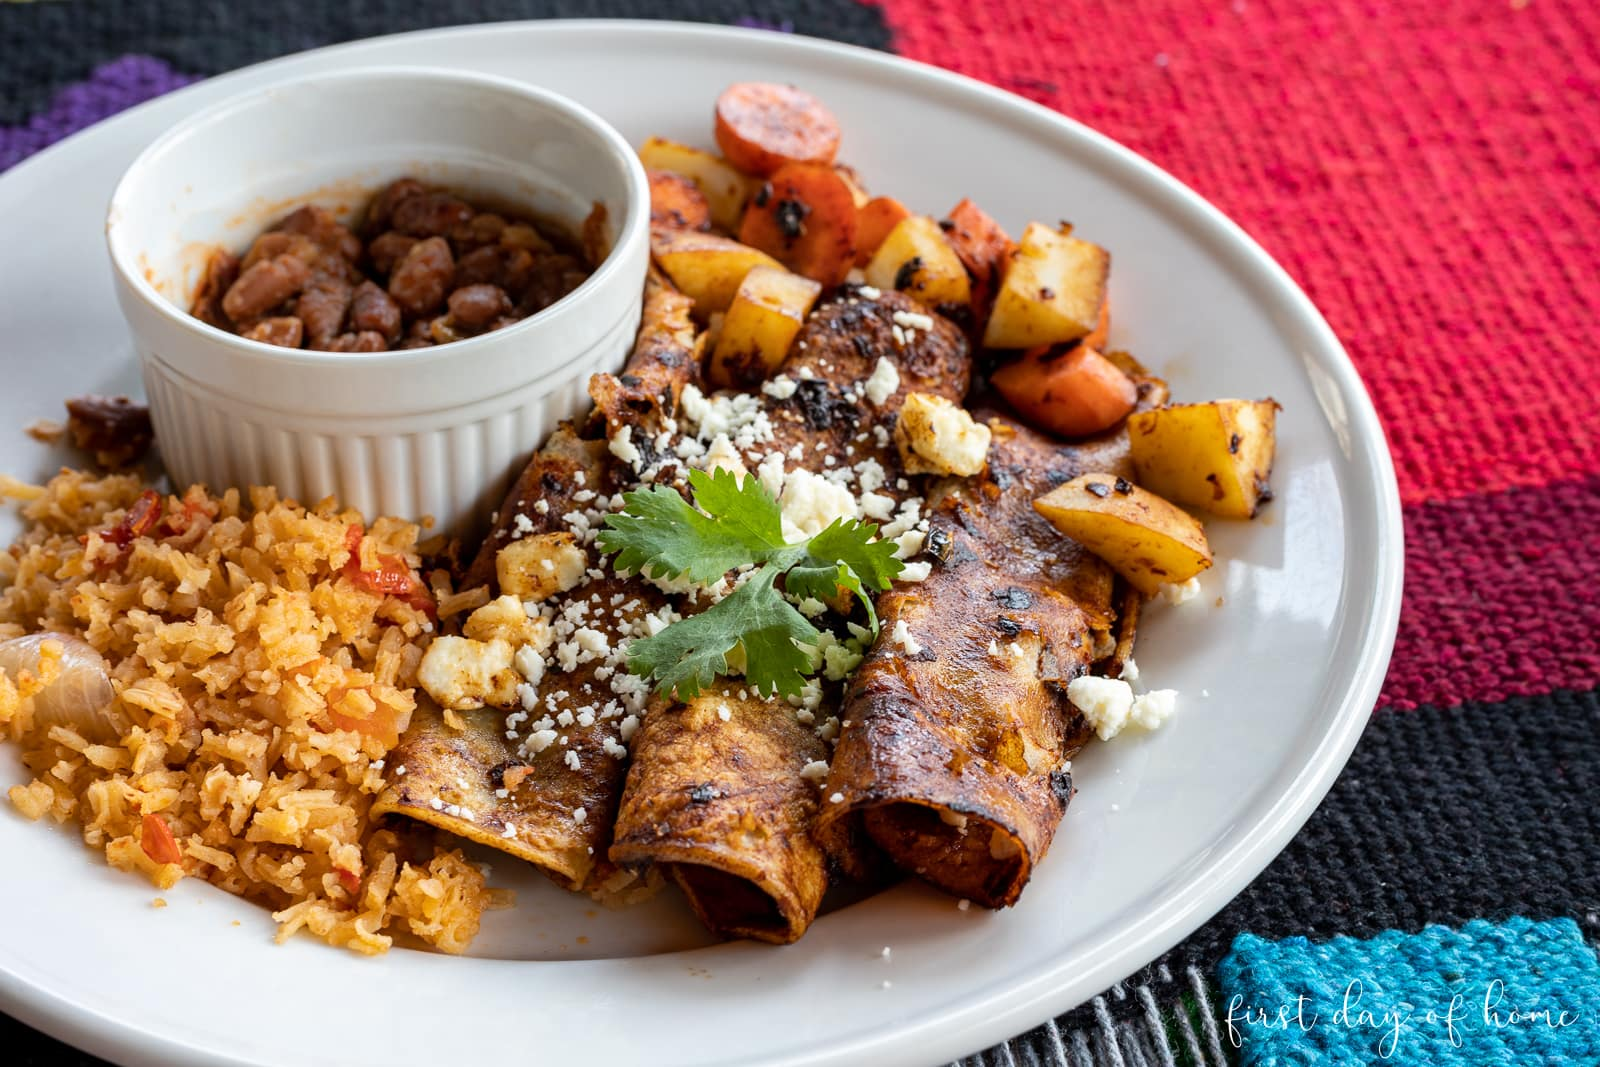 Enchiladas rojas or red enchiladas served with Spanish rice (Mexican rice) and charro beans